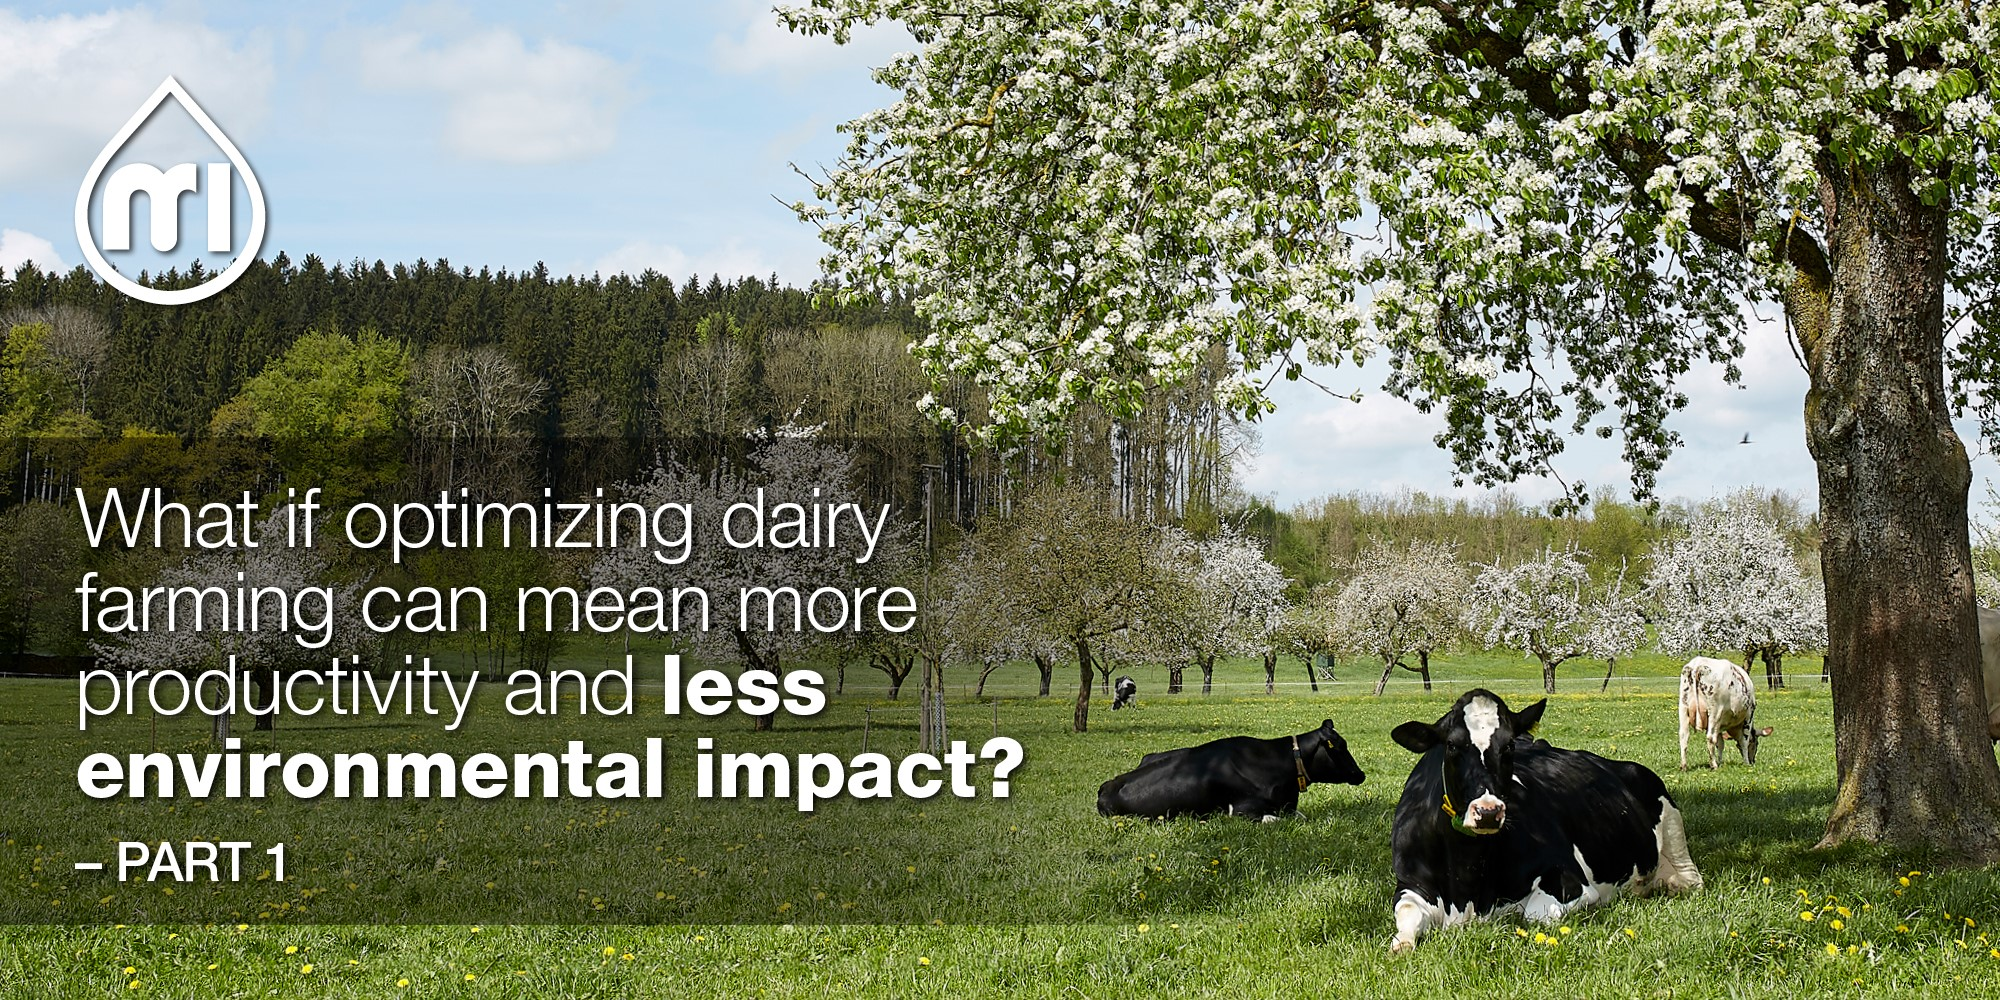 What if optimizing dairy farming can mean more productivity and less environmental impact? - Part 1